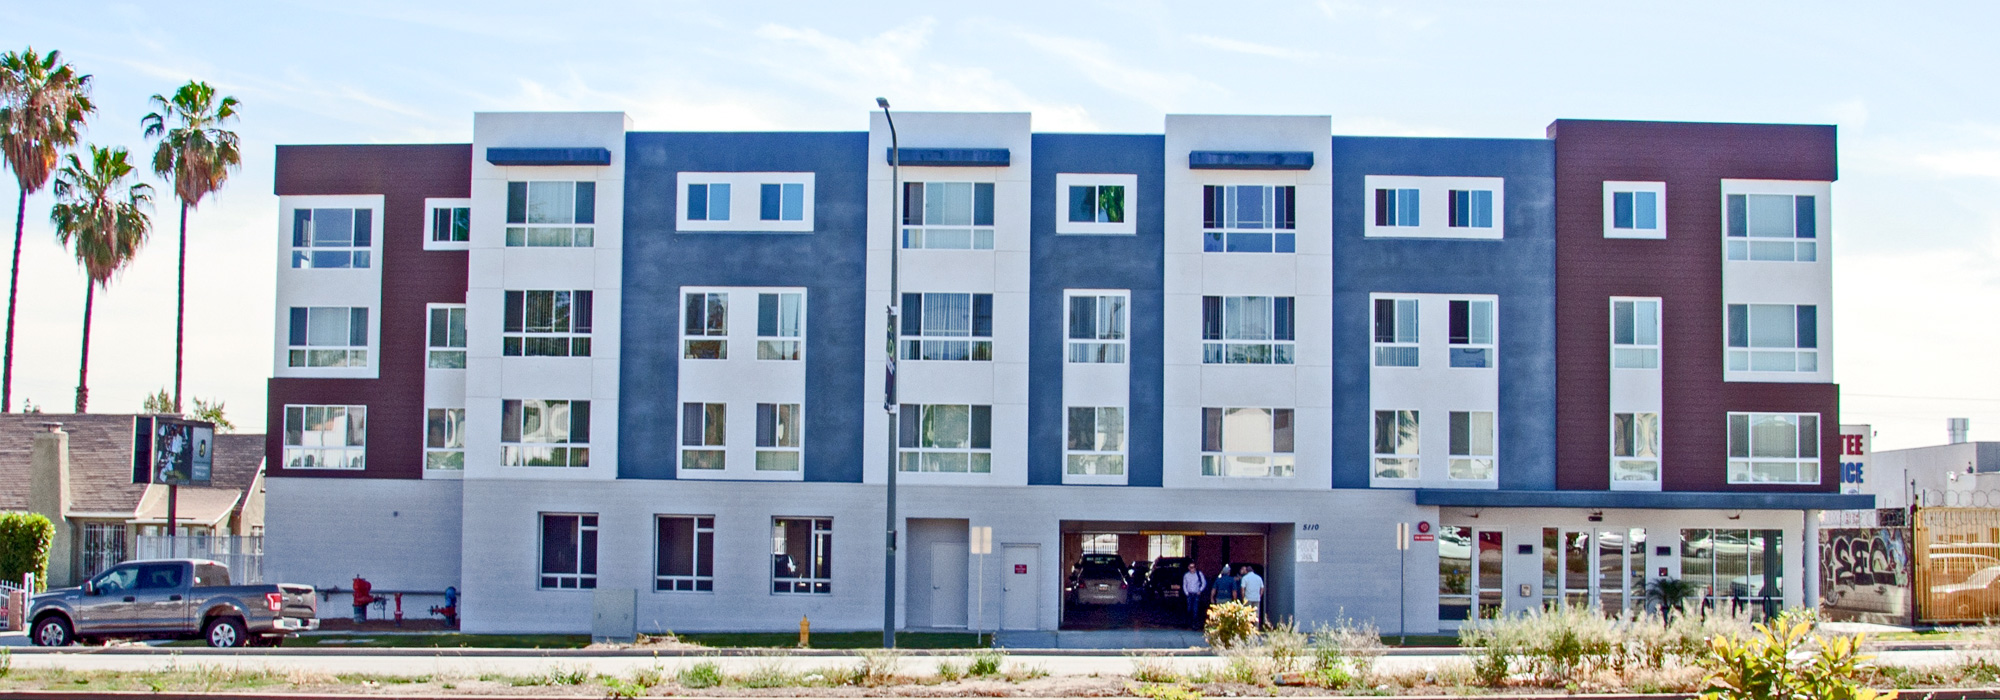 Crenshaw Family Apartments Now Open!